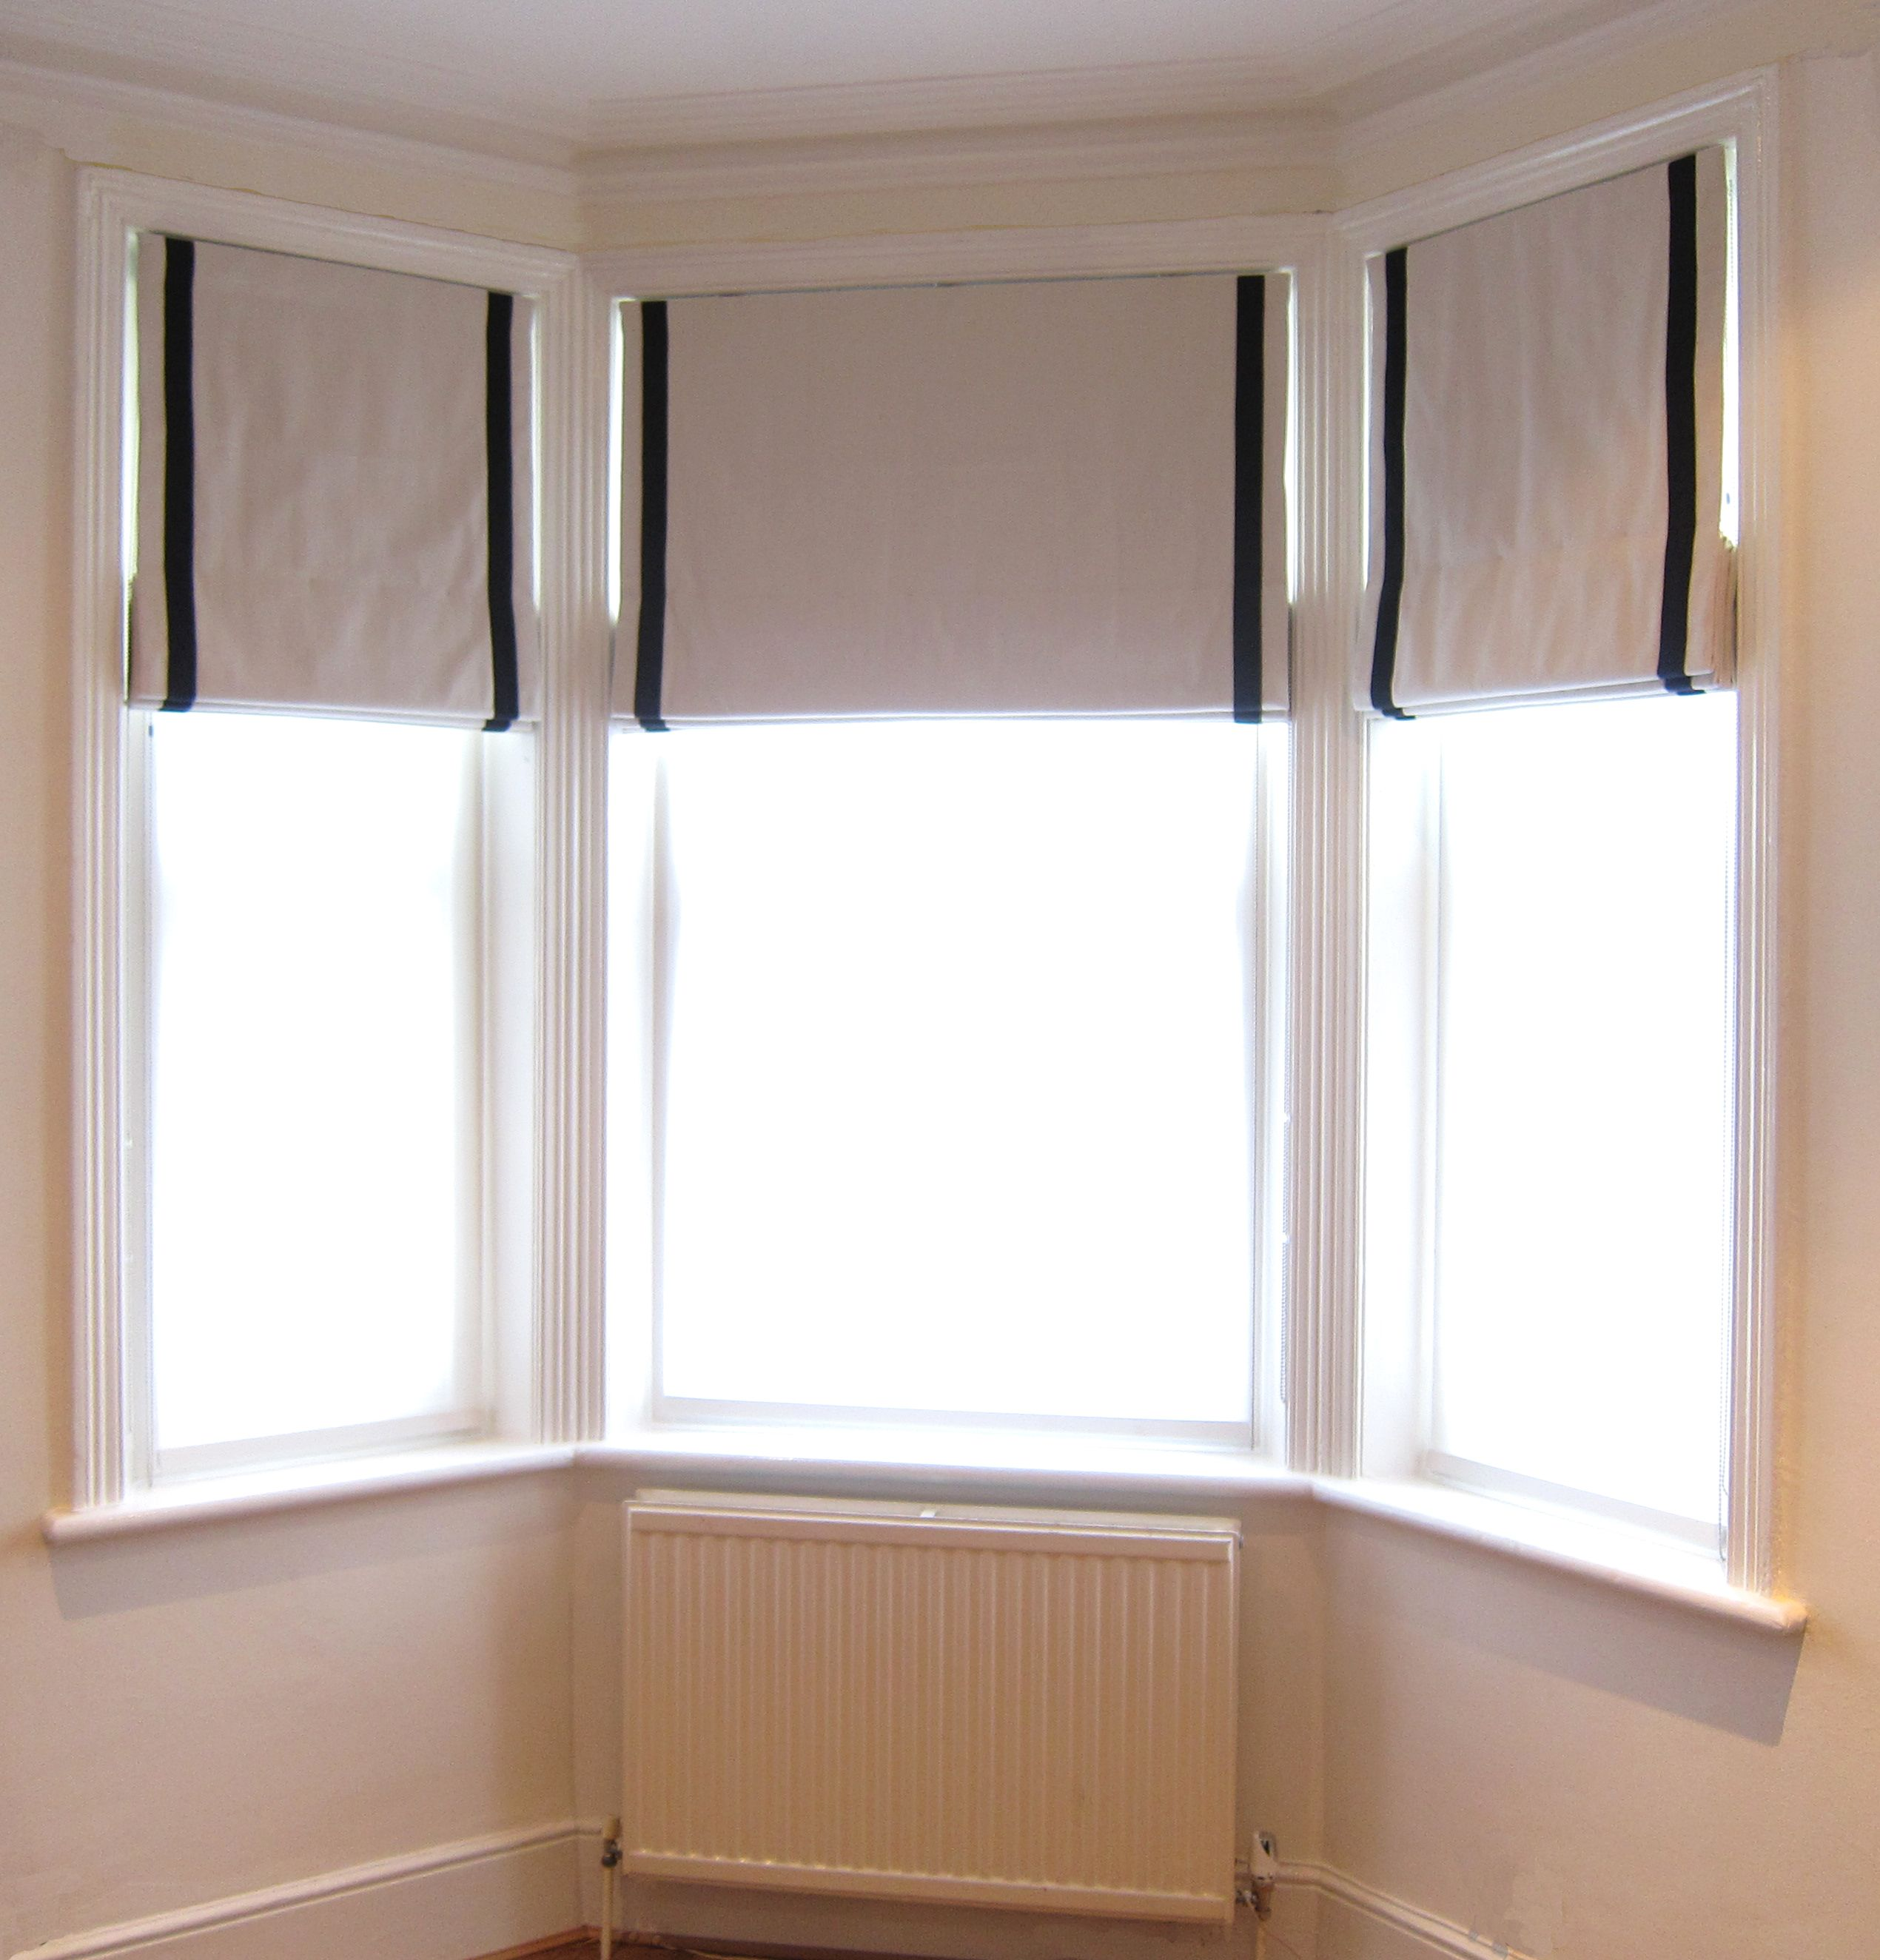 Bay Window With Roman Blinds With A Contrast Inset Border